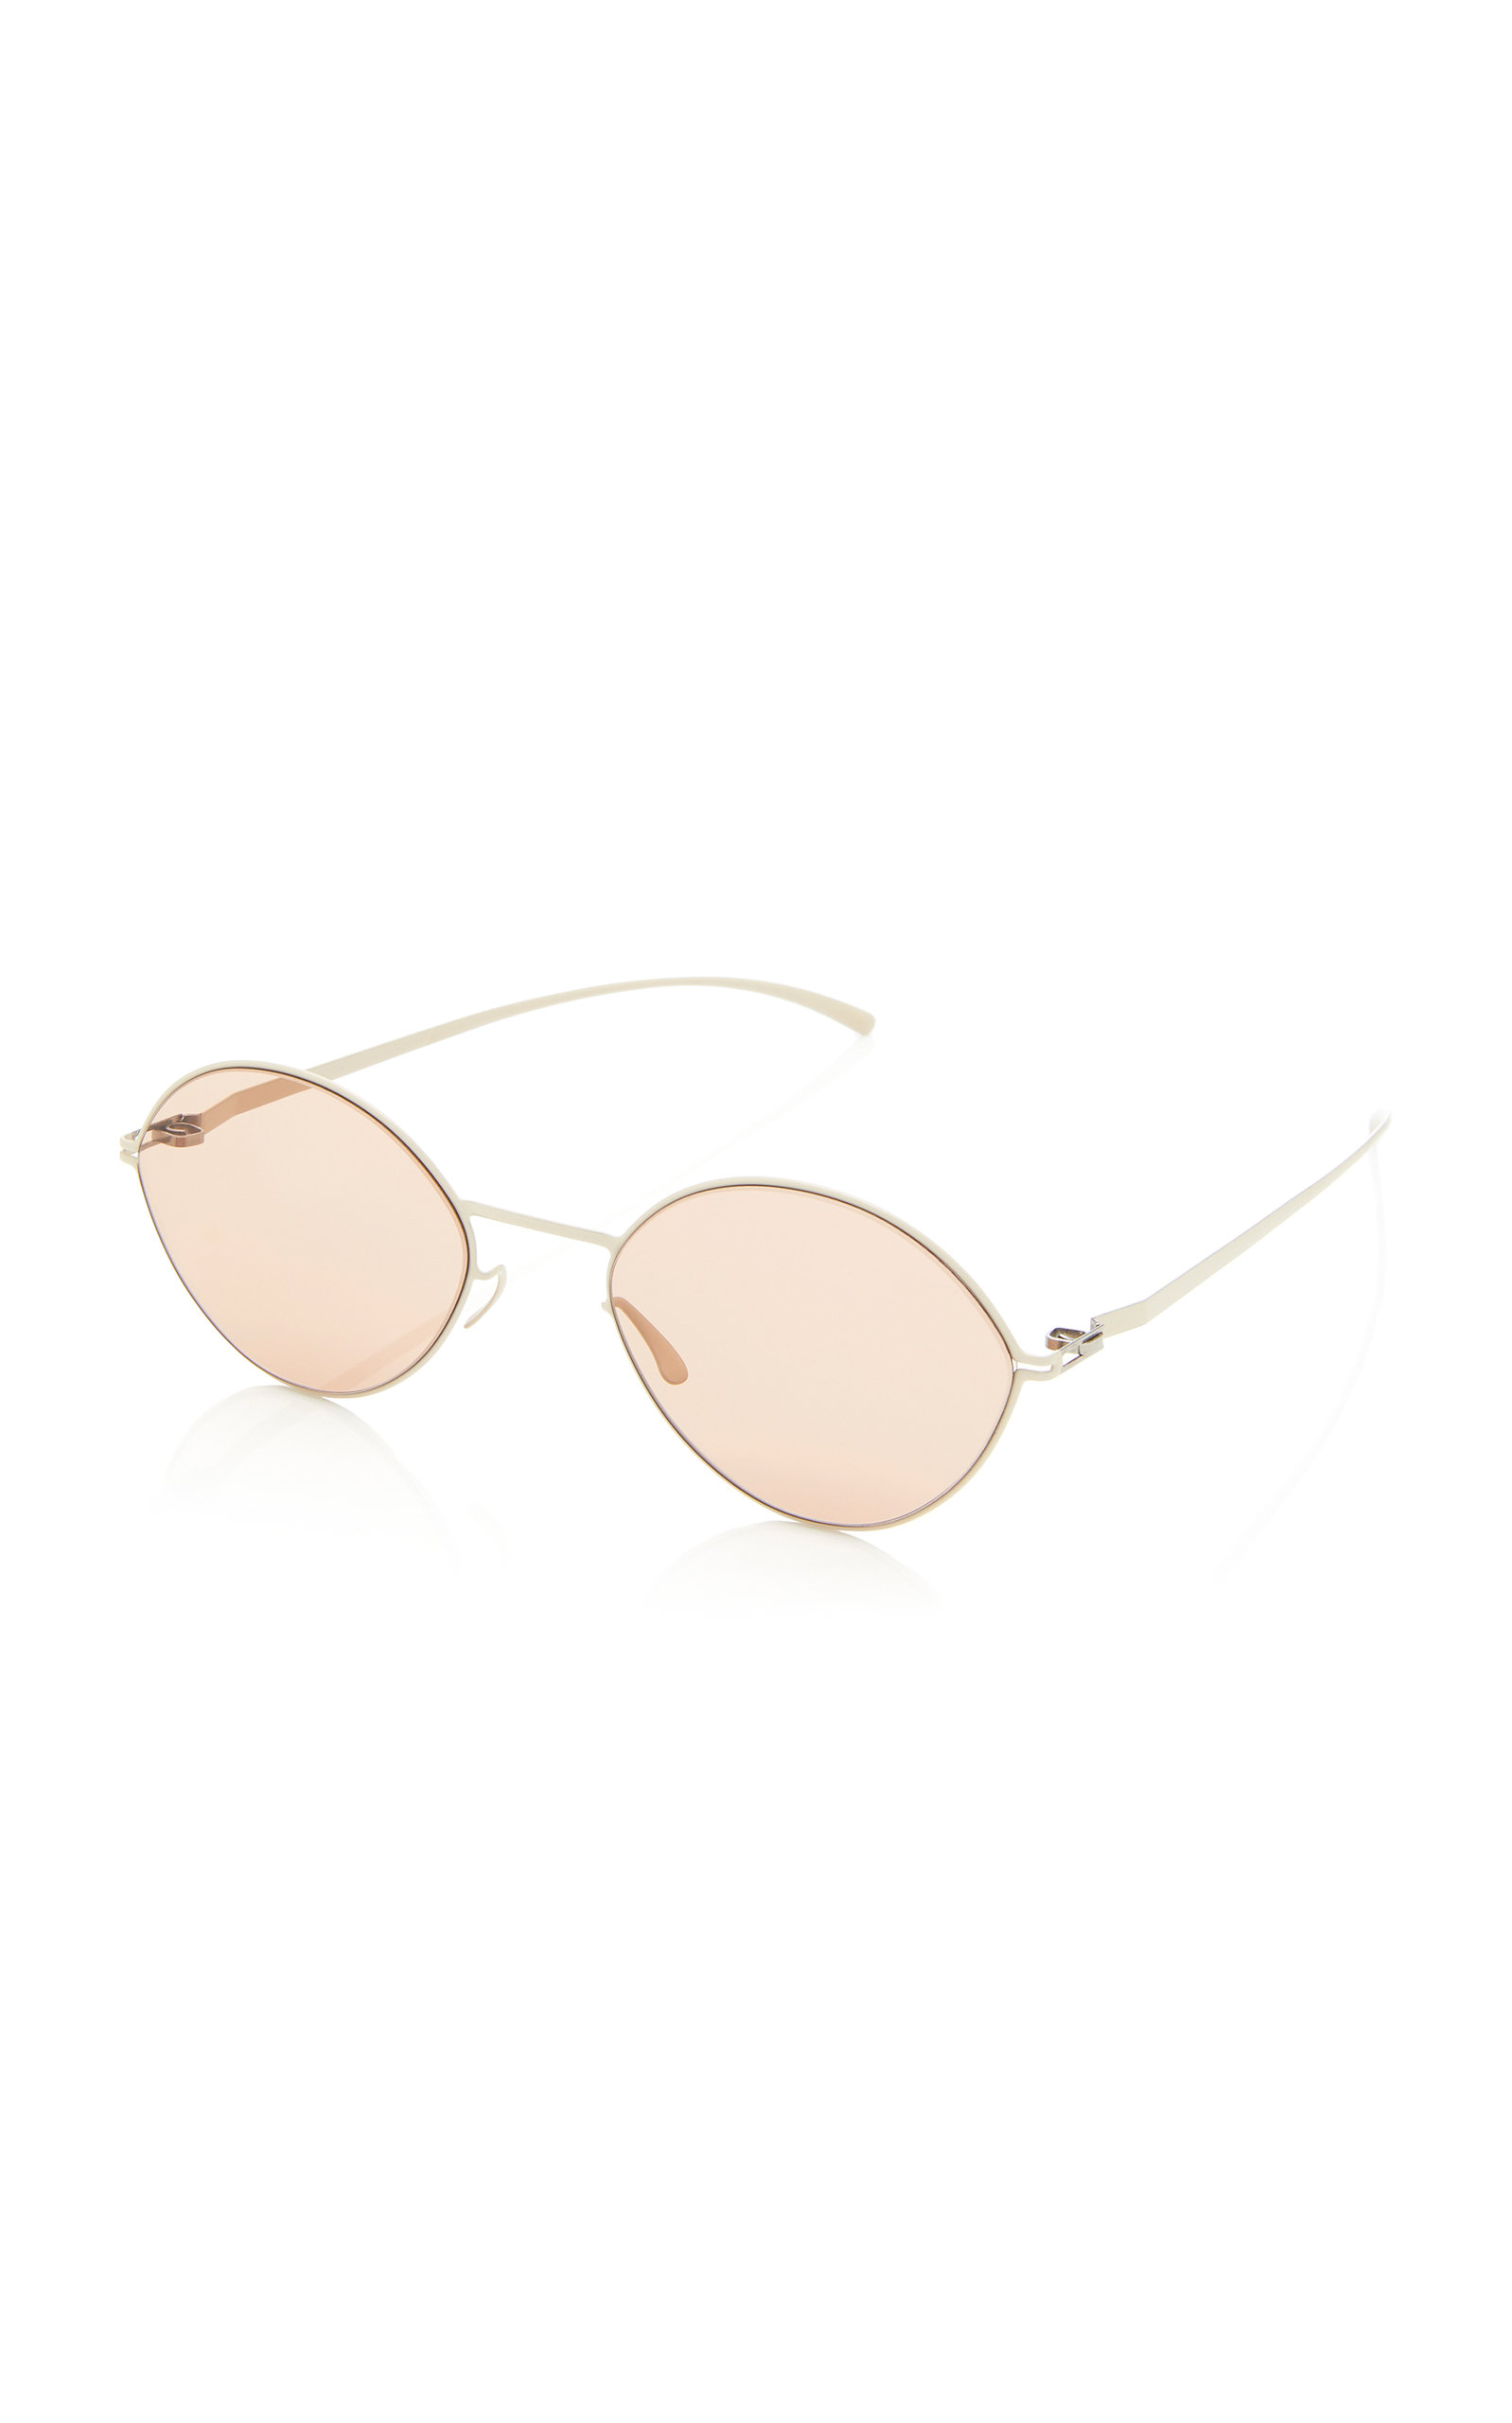 Round-Frame Stainless Steel Sunglasses Mykita 3Ouh2aY